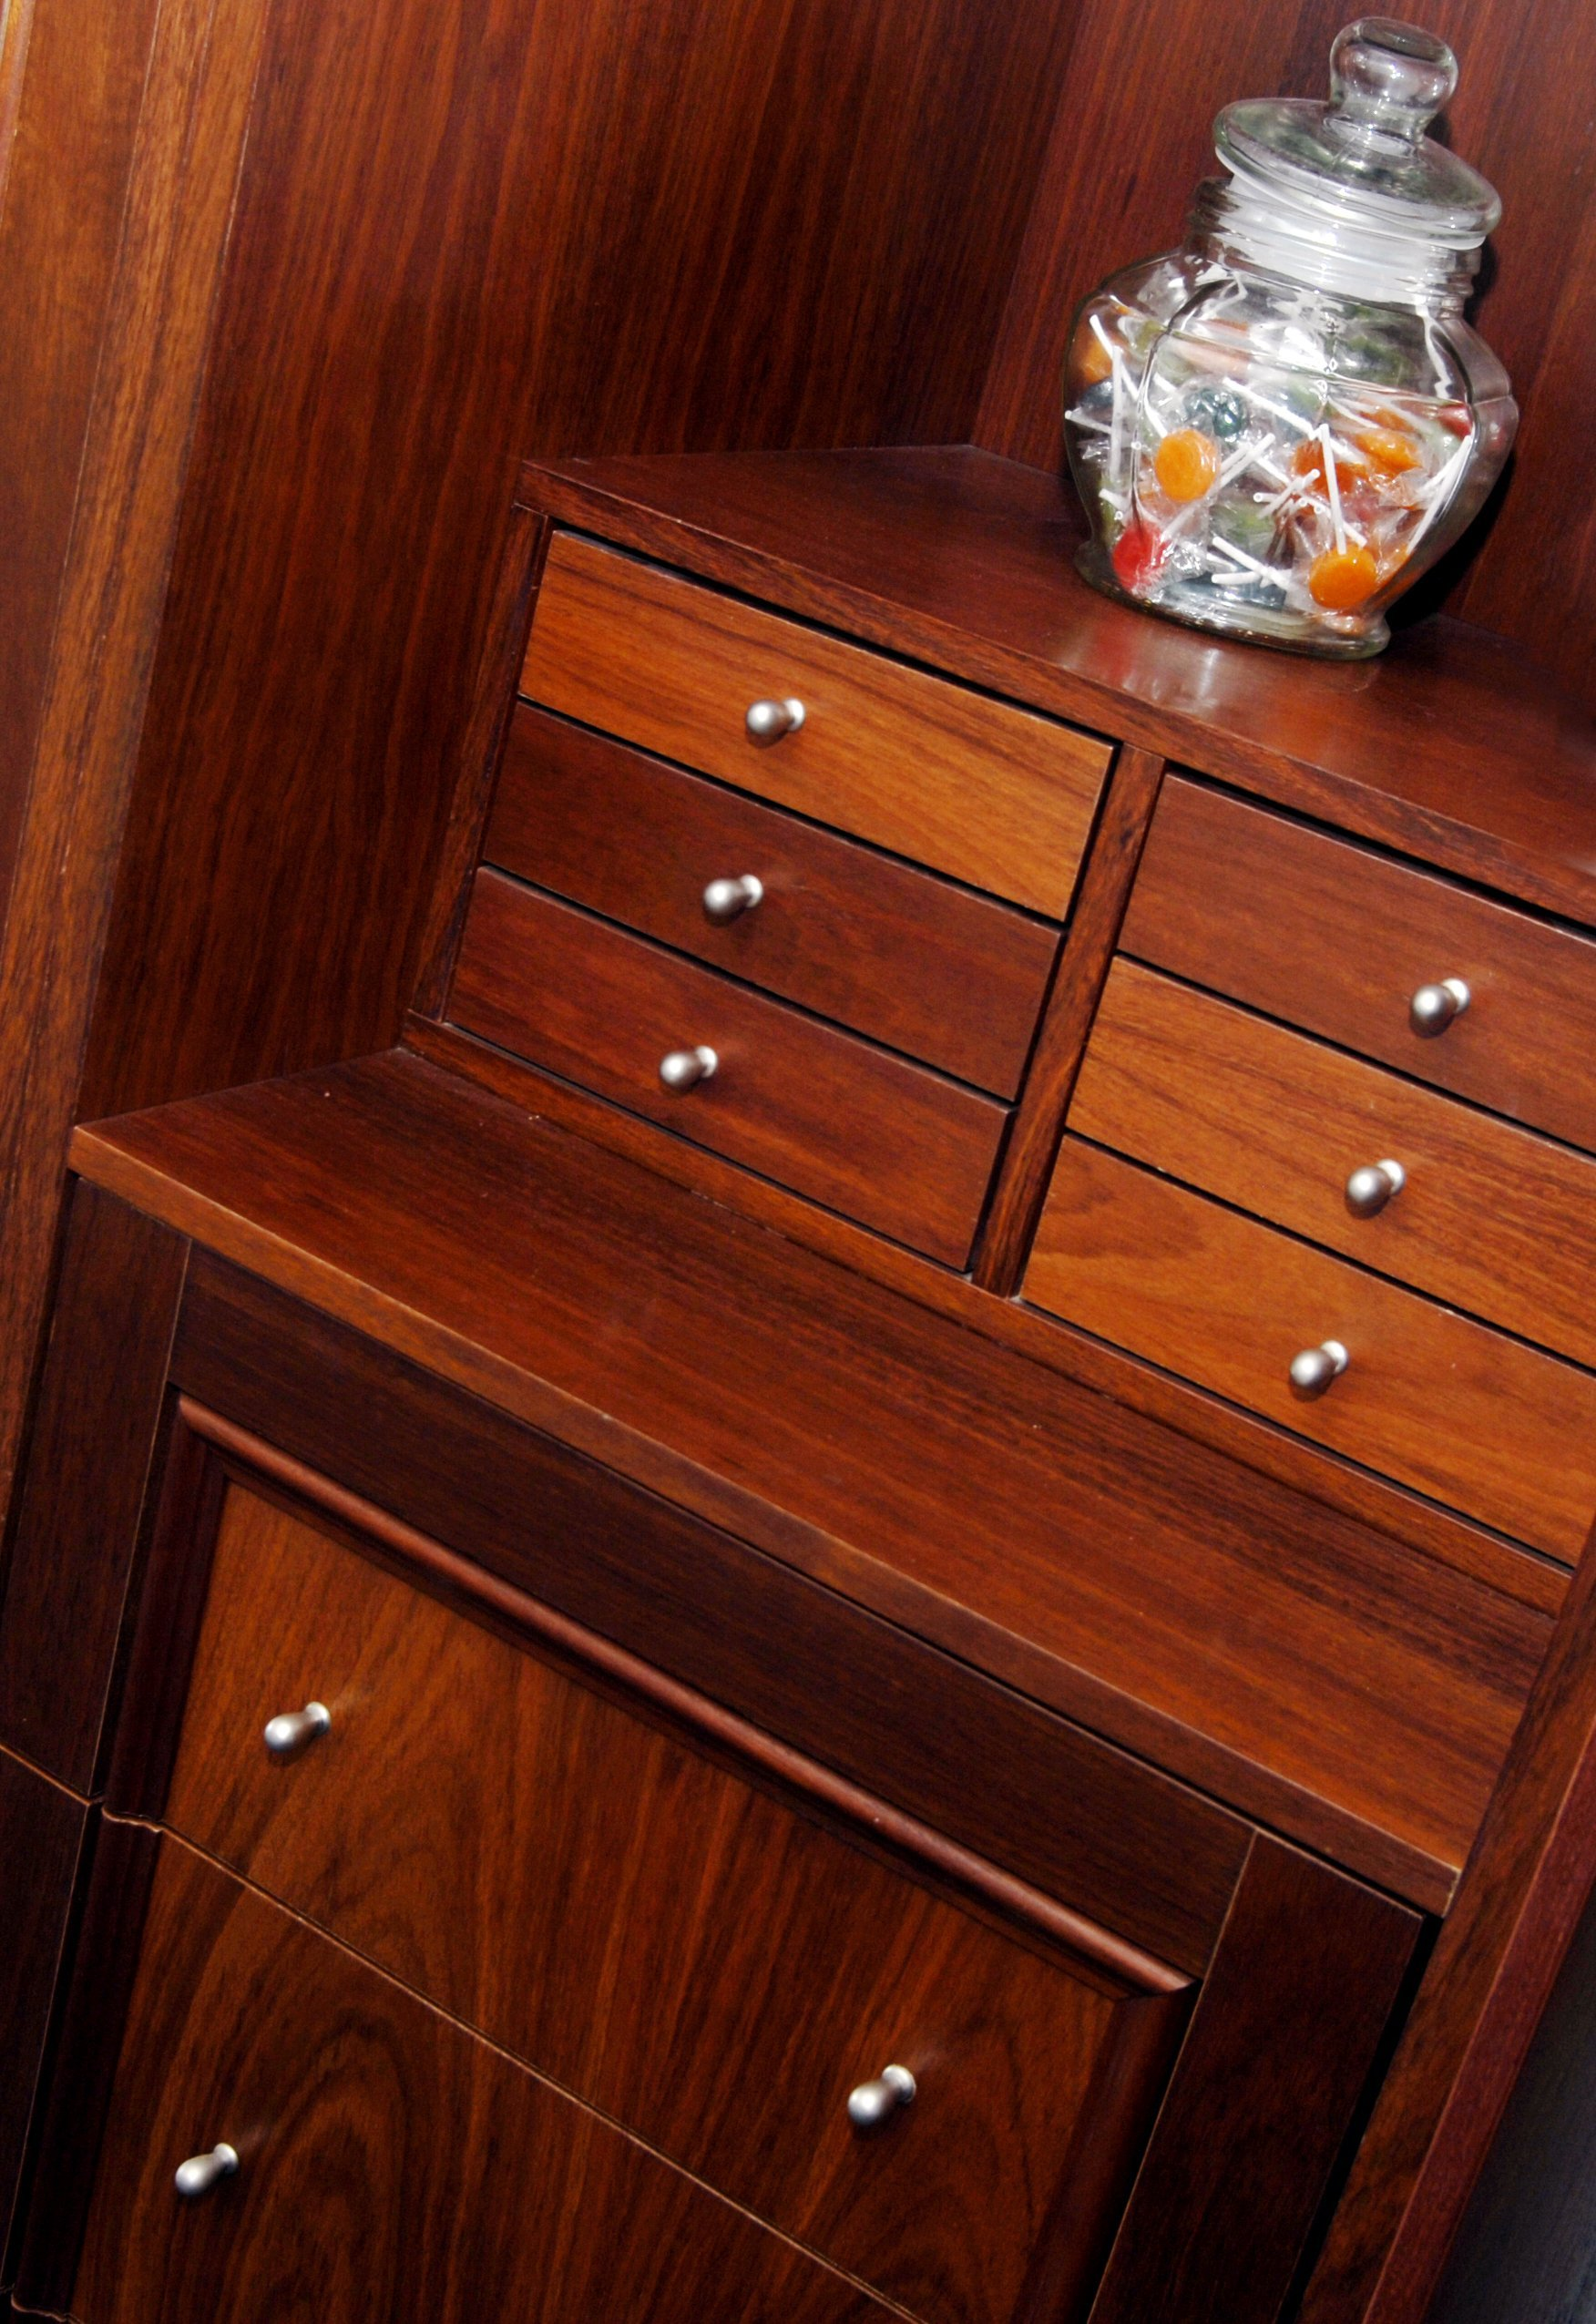 Timber jewellery cabinet